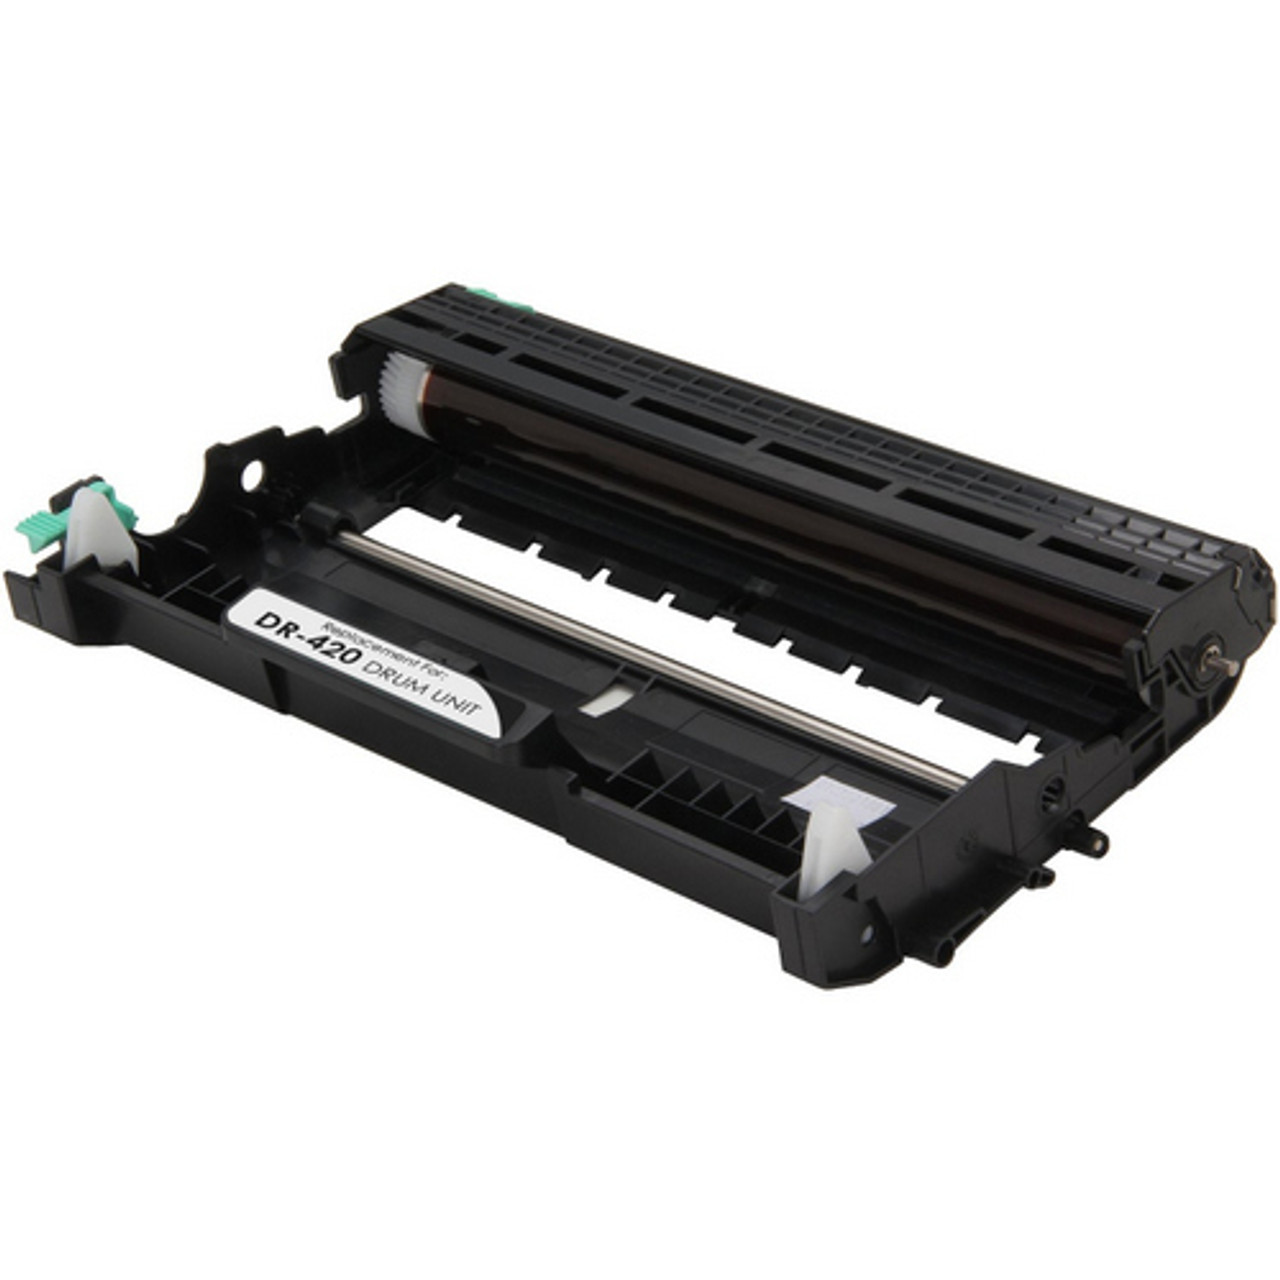 Equivalent to Brother DR-420 SuppliesMAX Compatible Replacement for Xerox 006R03486 Drum Unit 12000 Page Yield